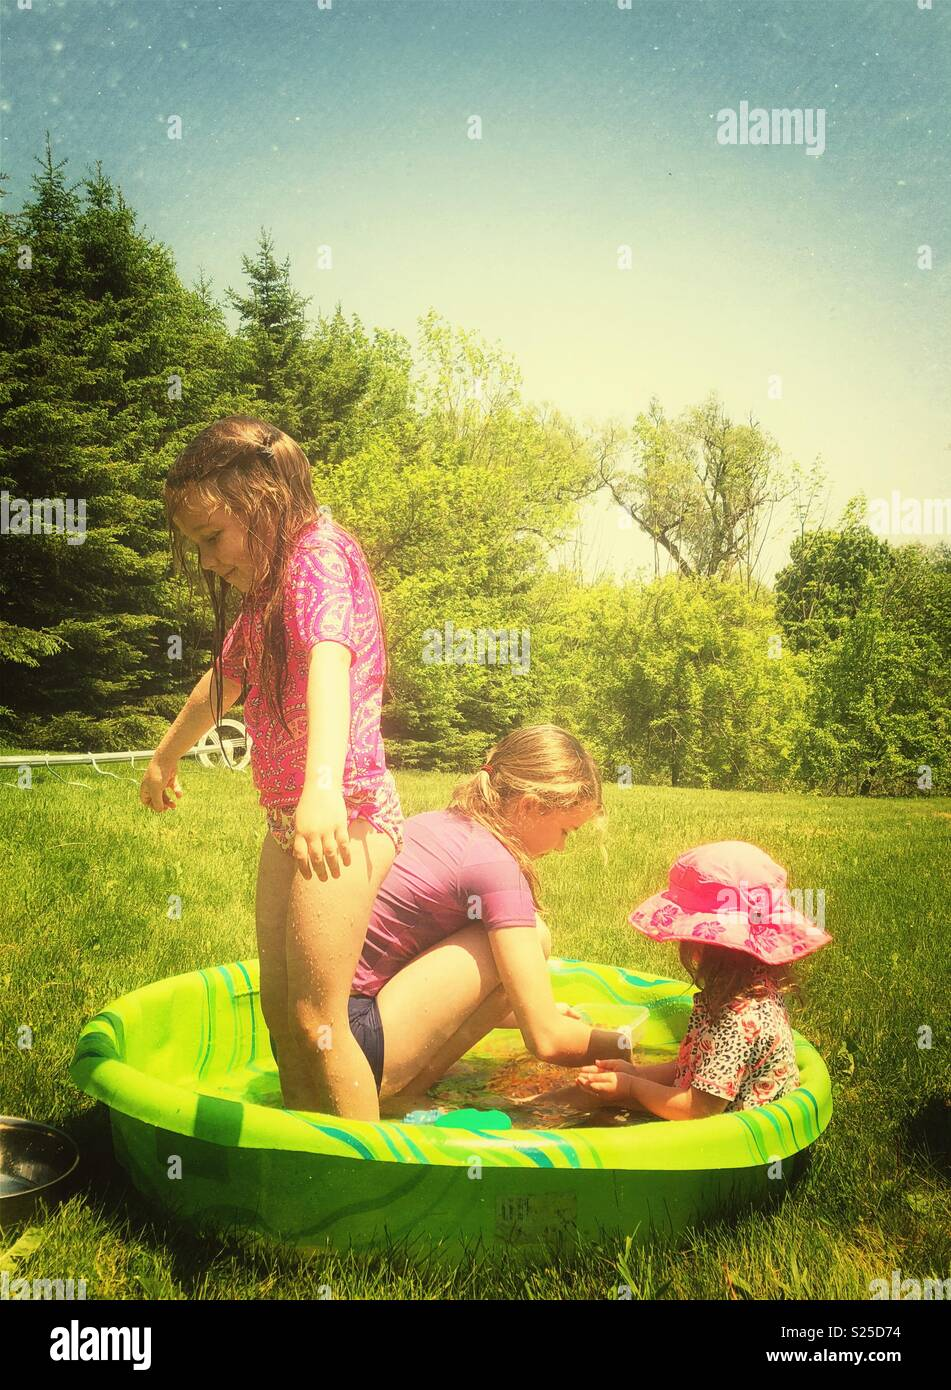 Three sisters playing in a backyard kiddy wading pool on a hot sunny day - Stock Image